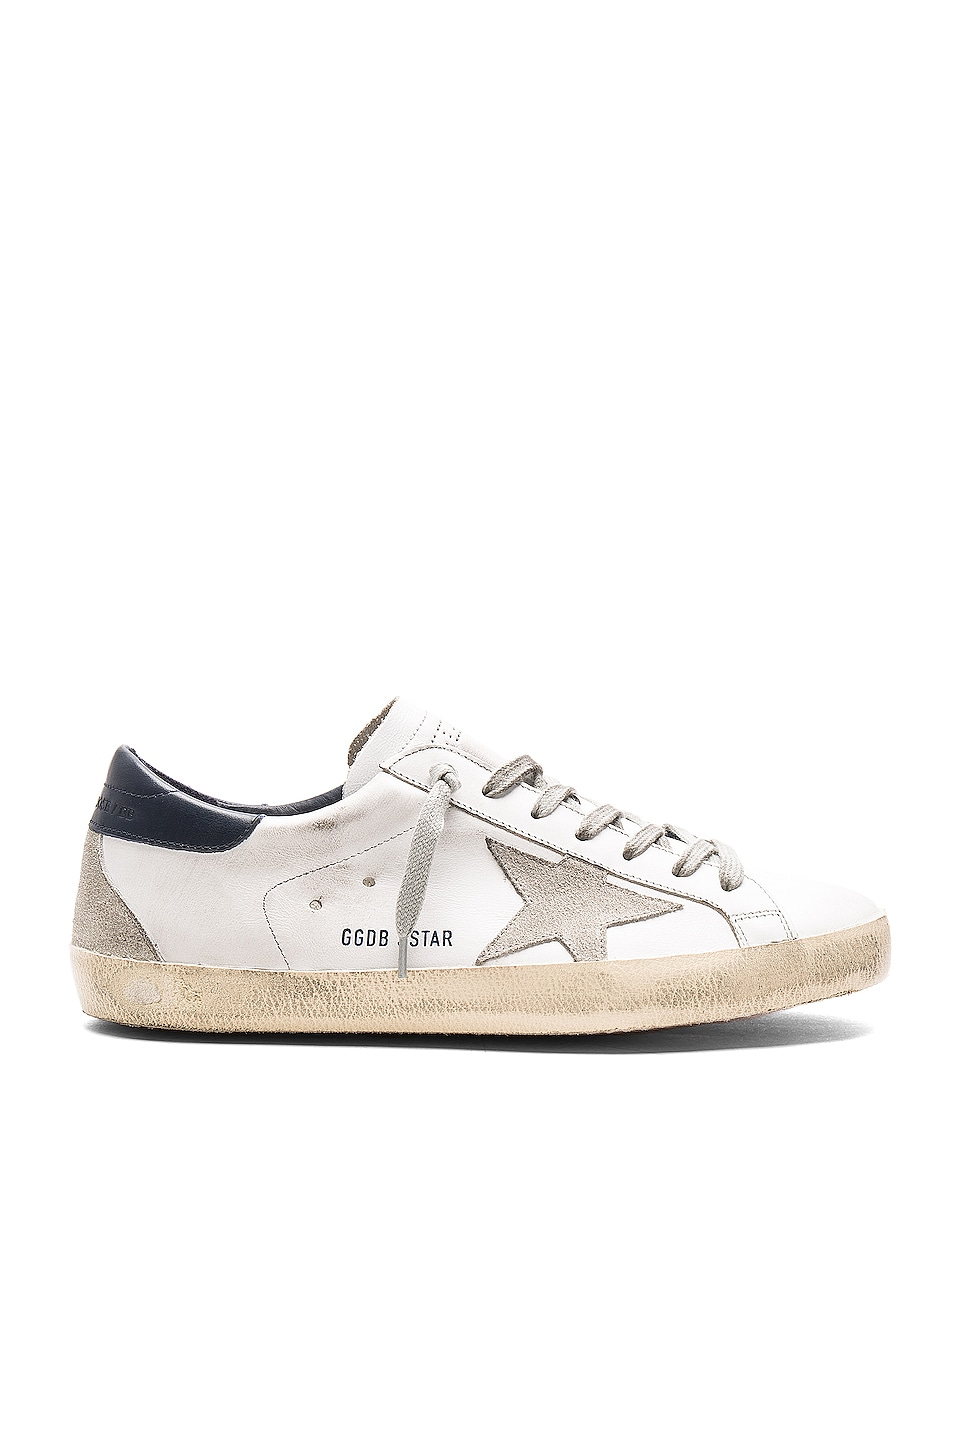 Golden Goose Leather Superstar Low Sneakers in White & Blue